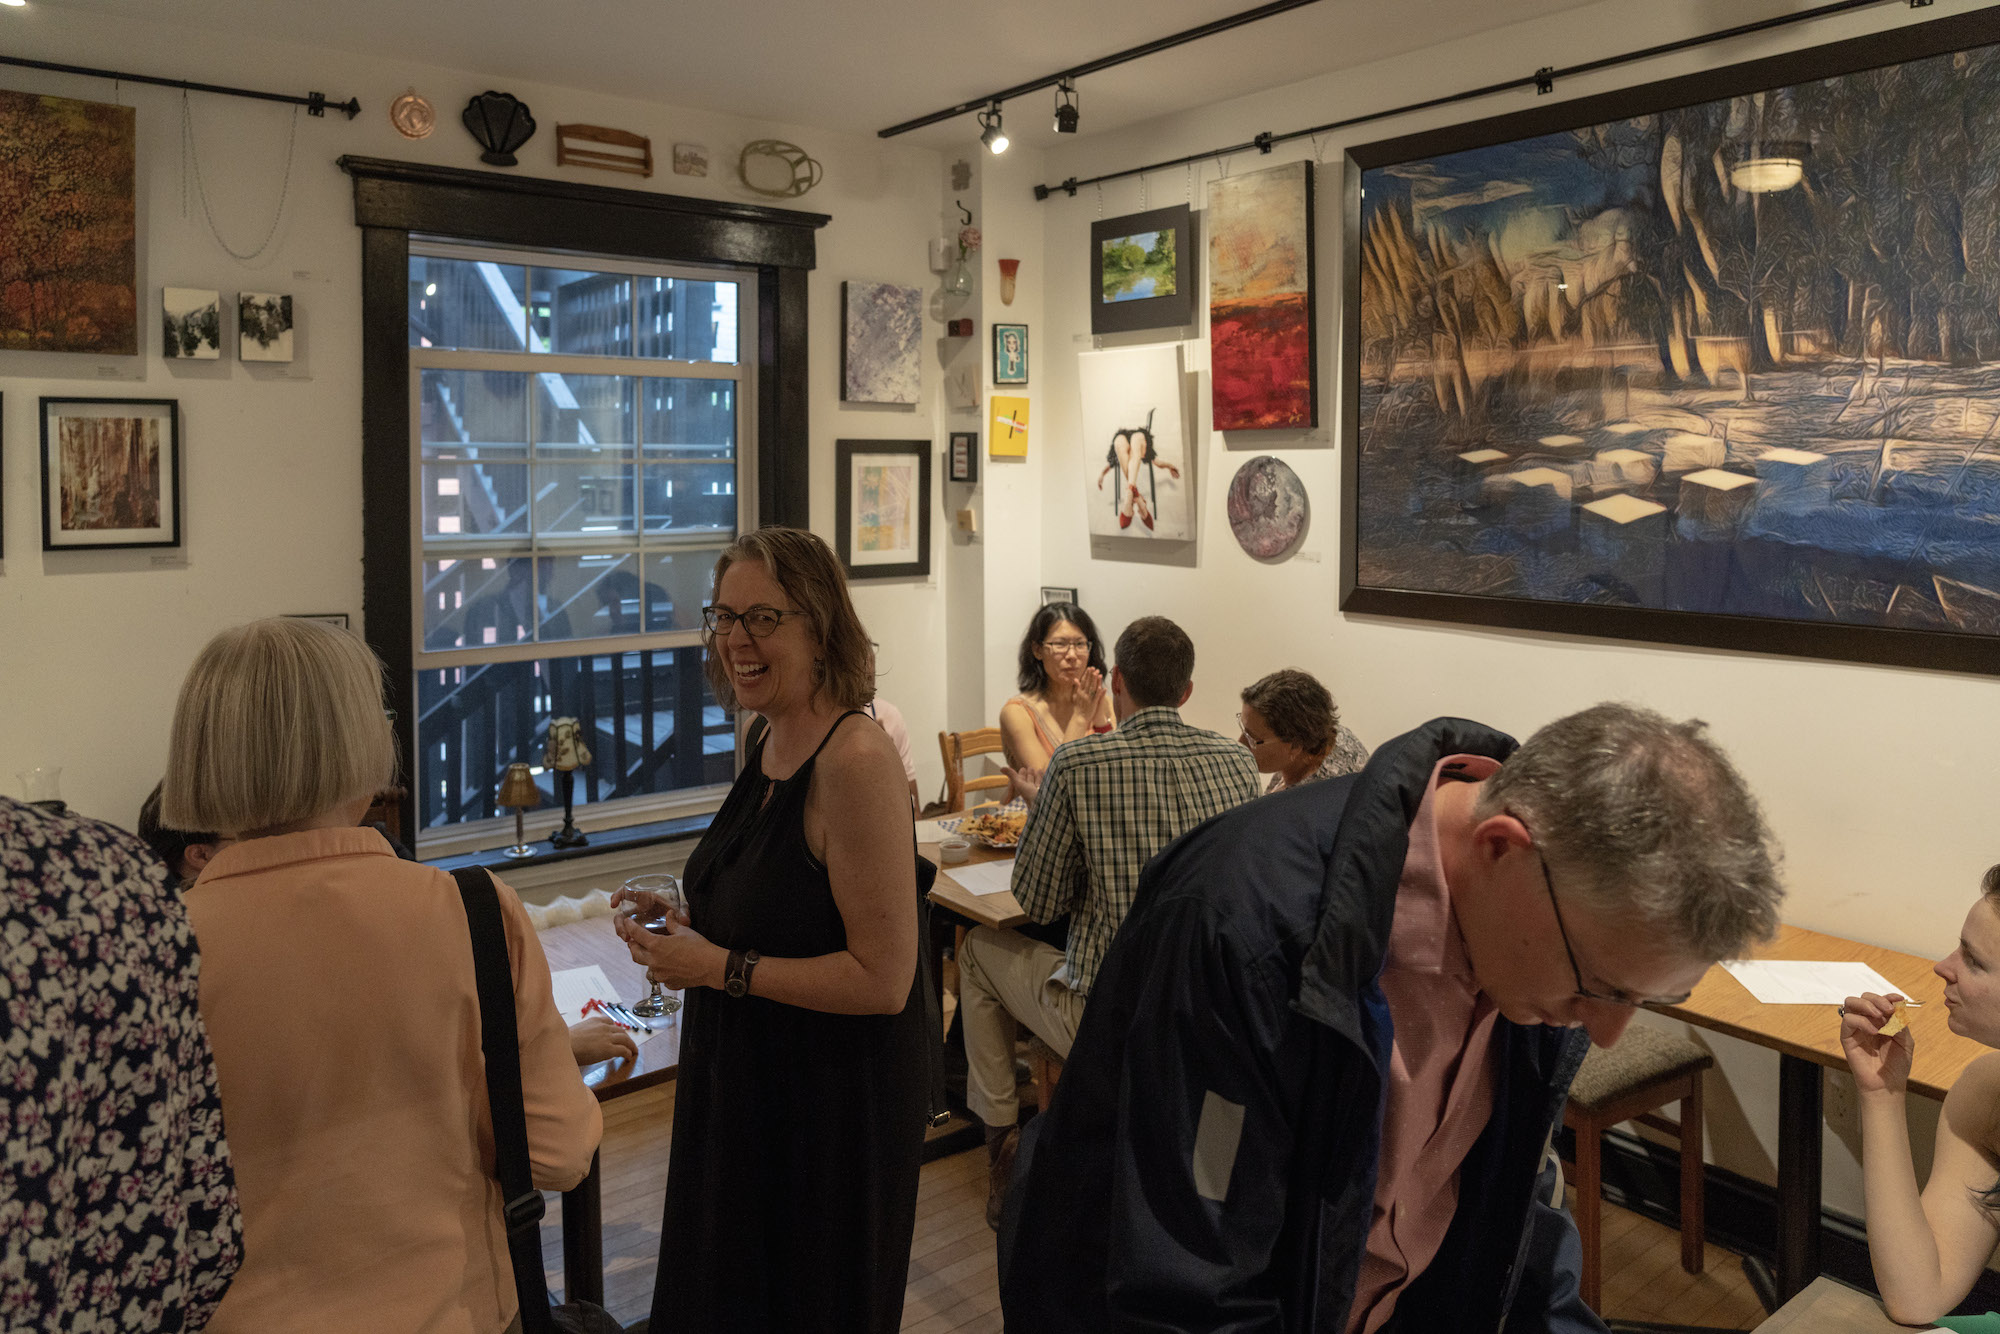 csart subscribers, art house cafe, csart ottawa